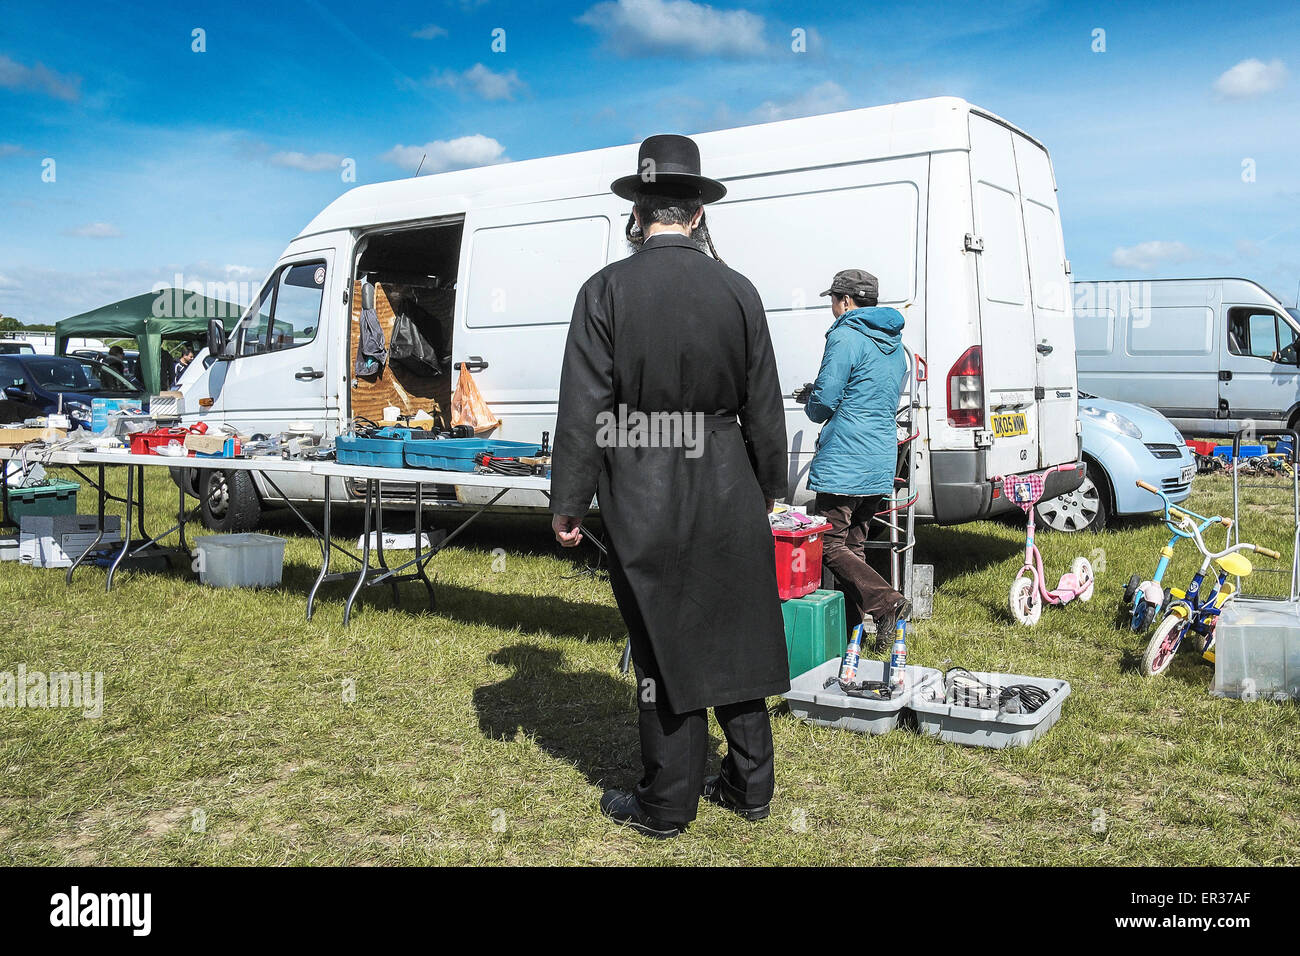 An Orthodox Jew at a boot slae in Essex. - Stock Image